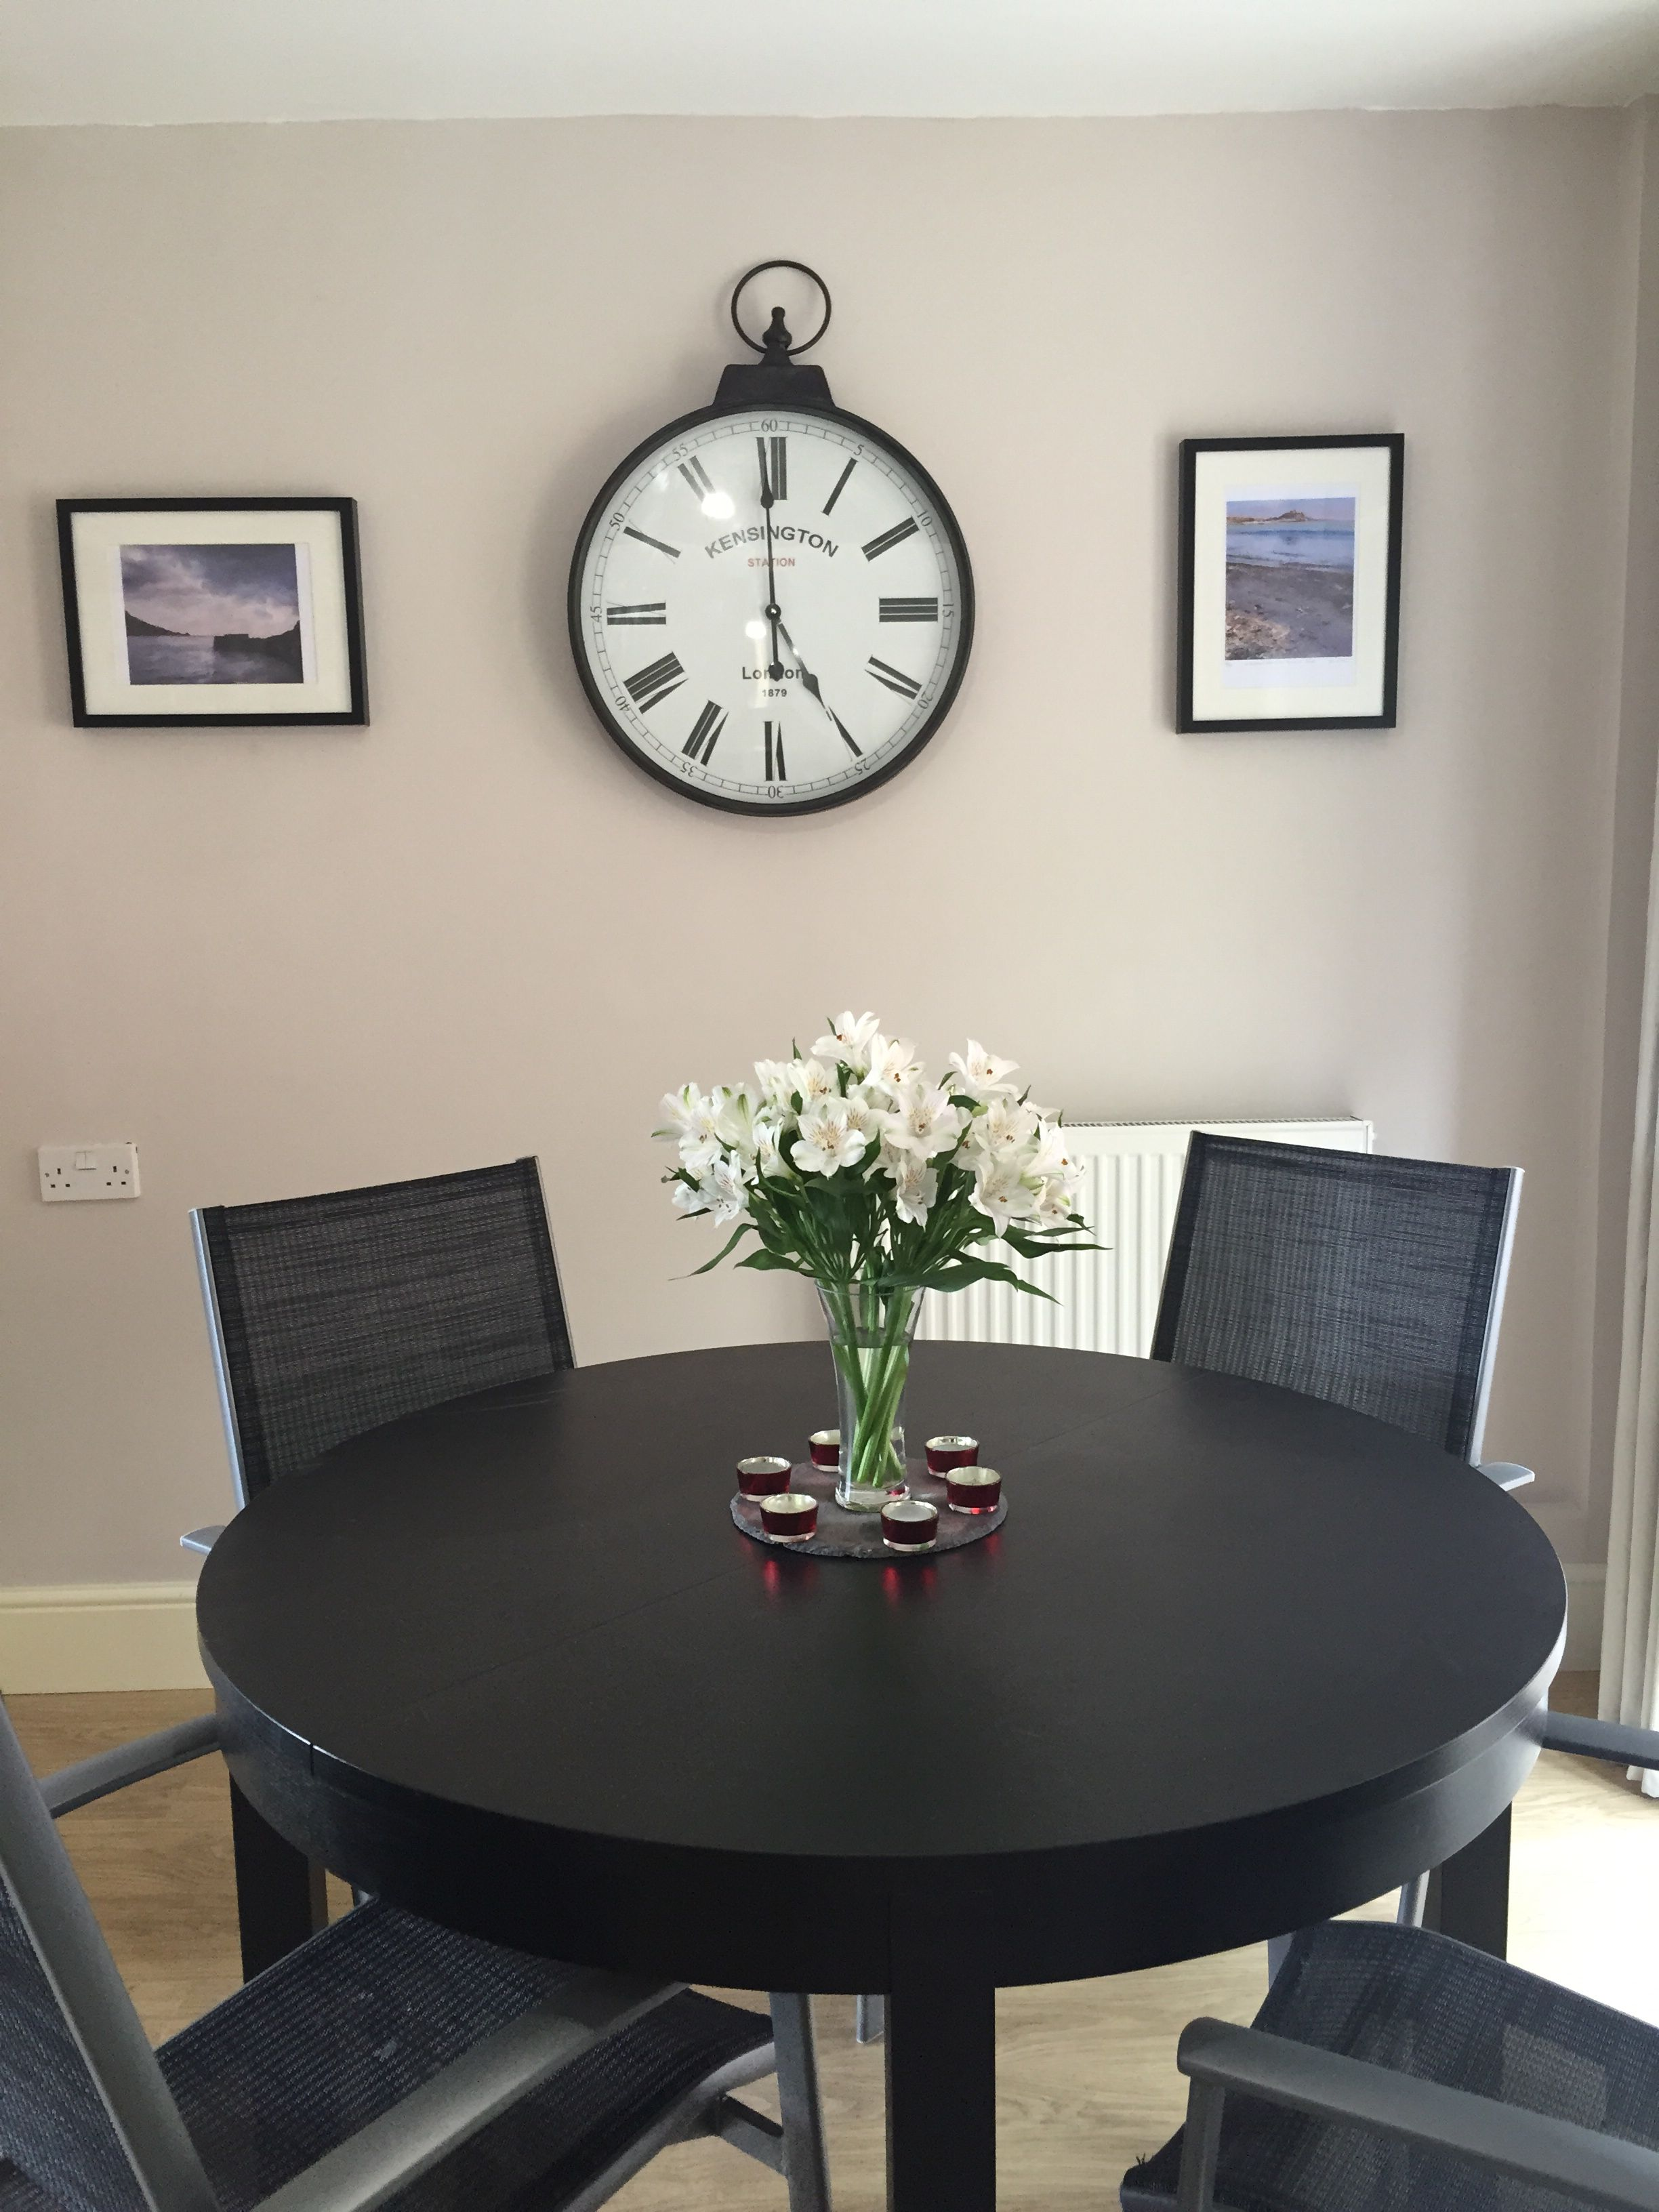 Dulux gentle fawn giant clock and cornwall prints by dave crocker dining room idea kitchen for Dulux colour schemes for living rooms